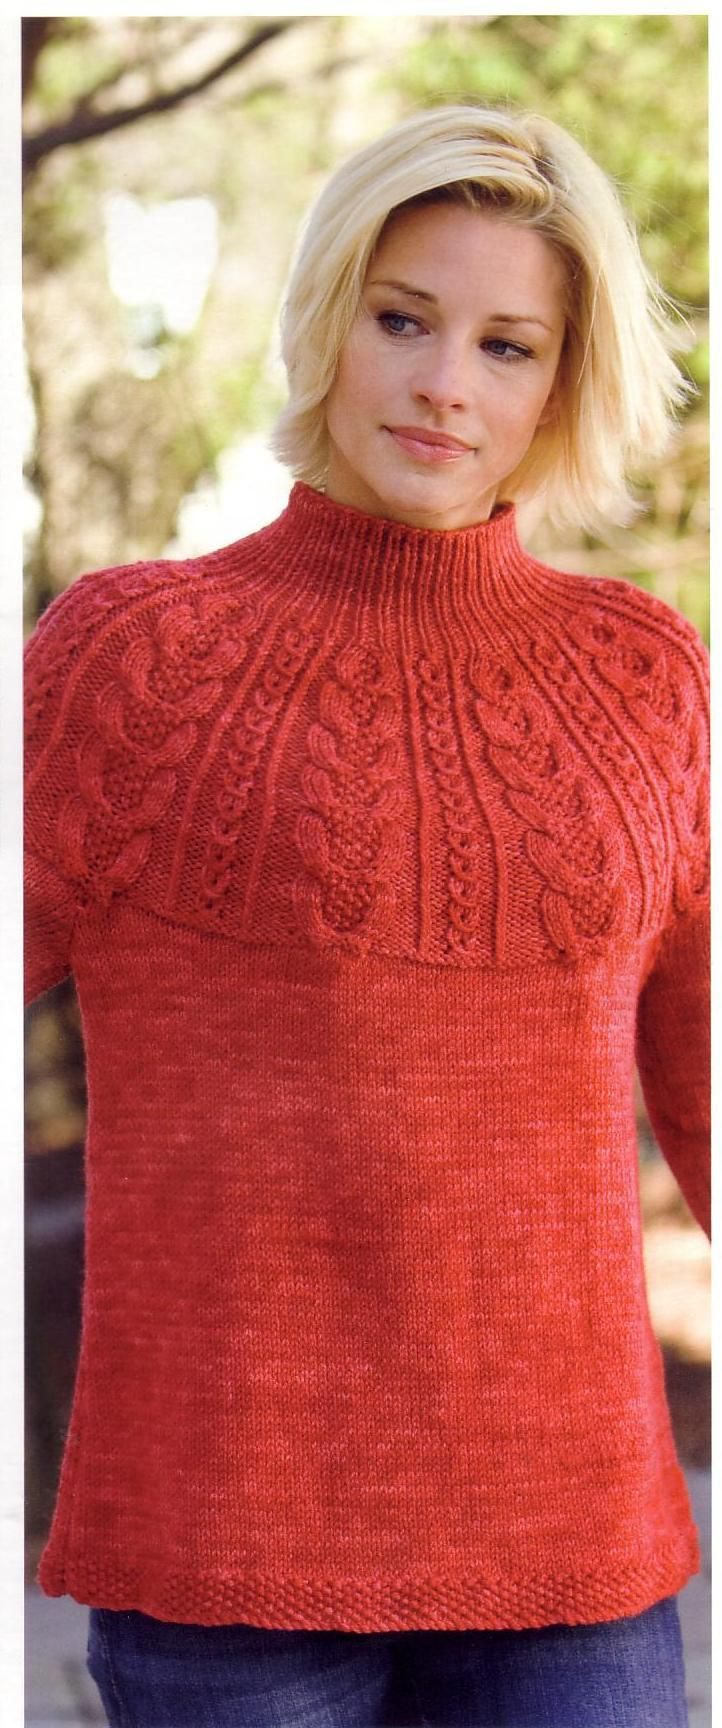 Pullover with yoke. LiveInternet - free